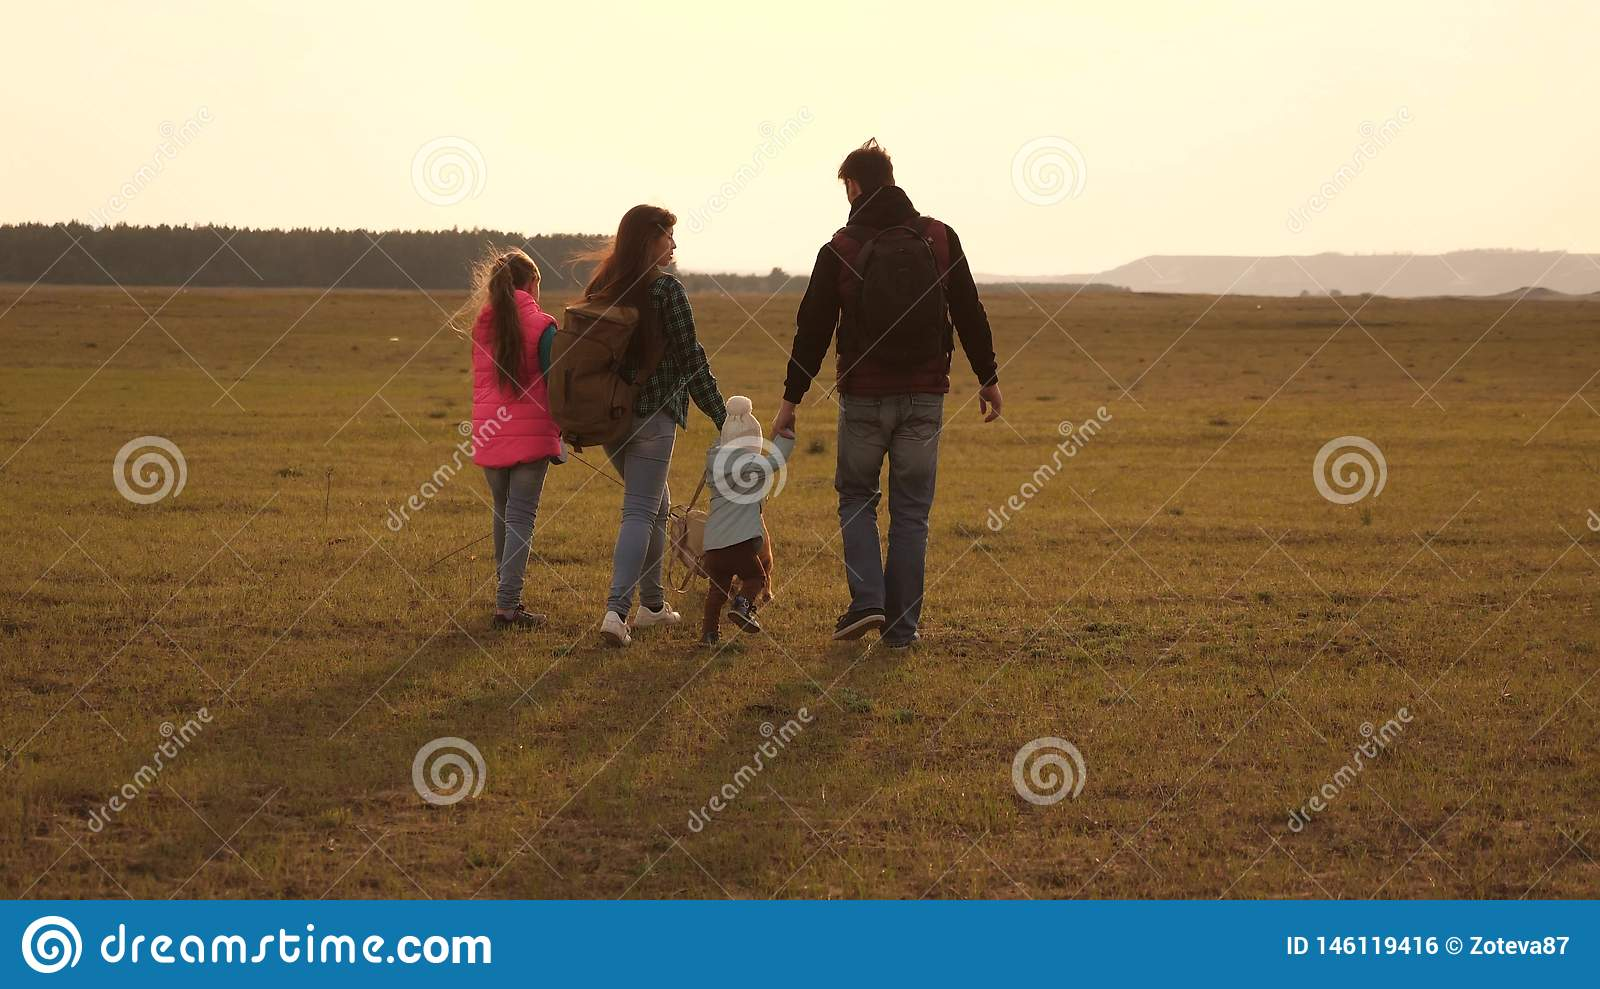 Dad, mom, daughters and pets, tourists. teamwork of a close-knit family. the family travels with the dog across the